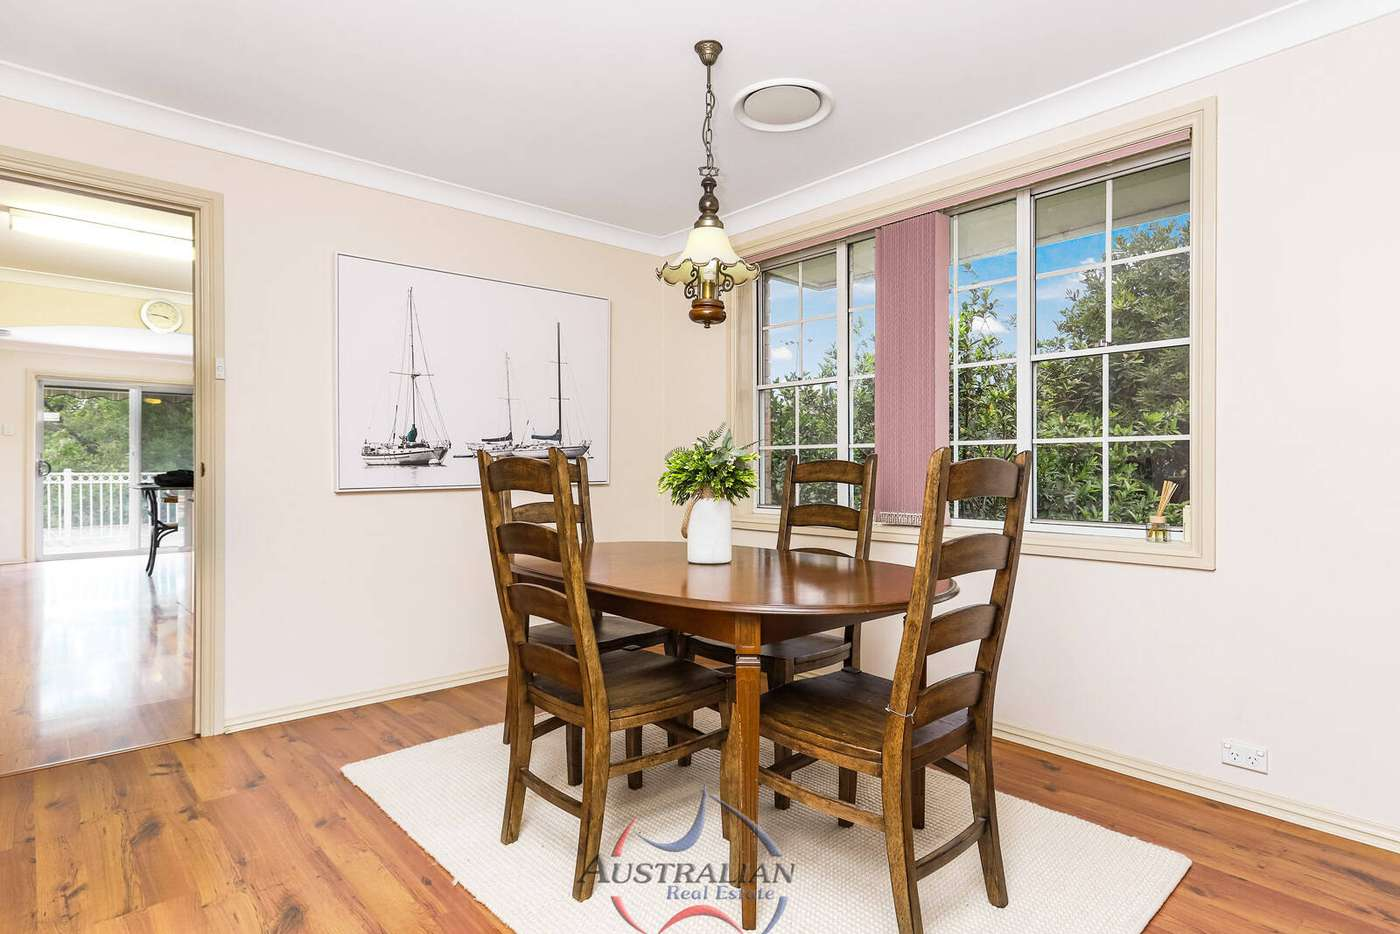 Sixth view of Homely house listing, 13 Noora Place, Marayong NSW 2148